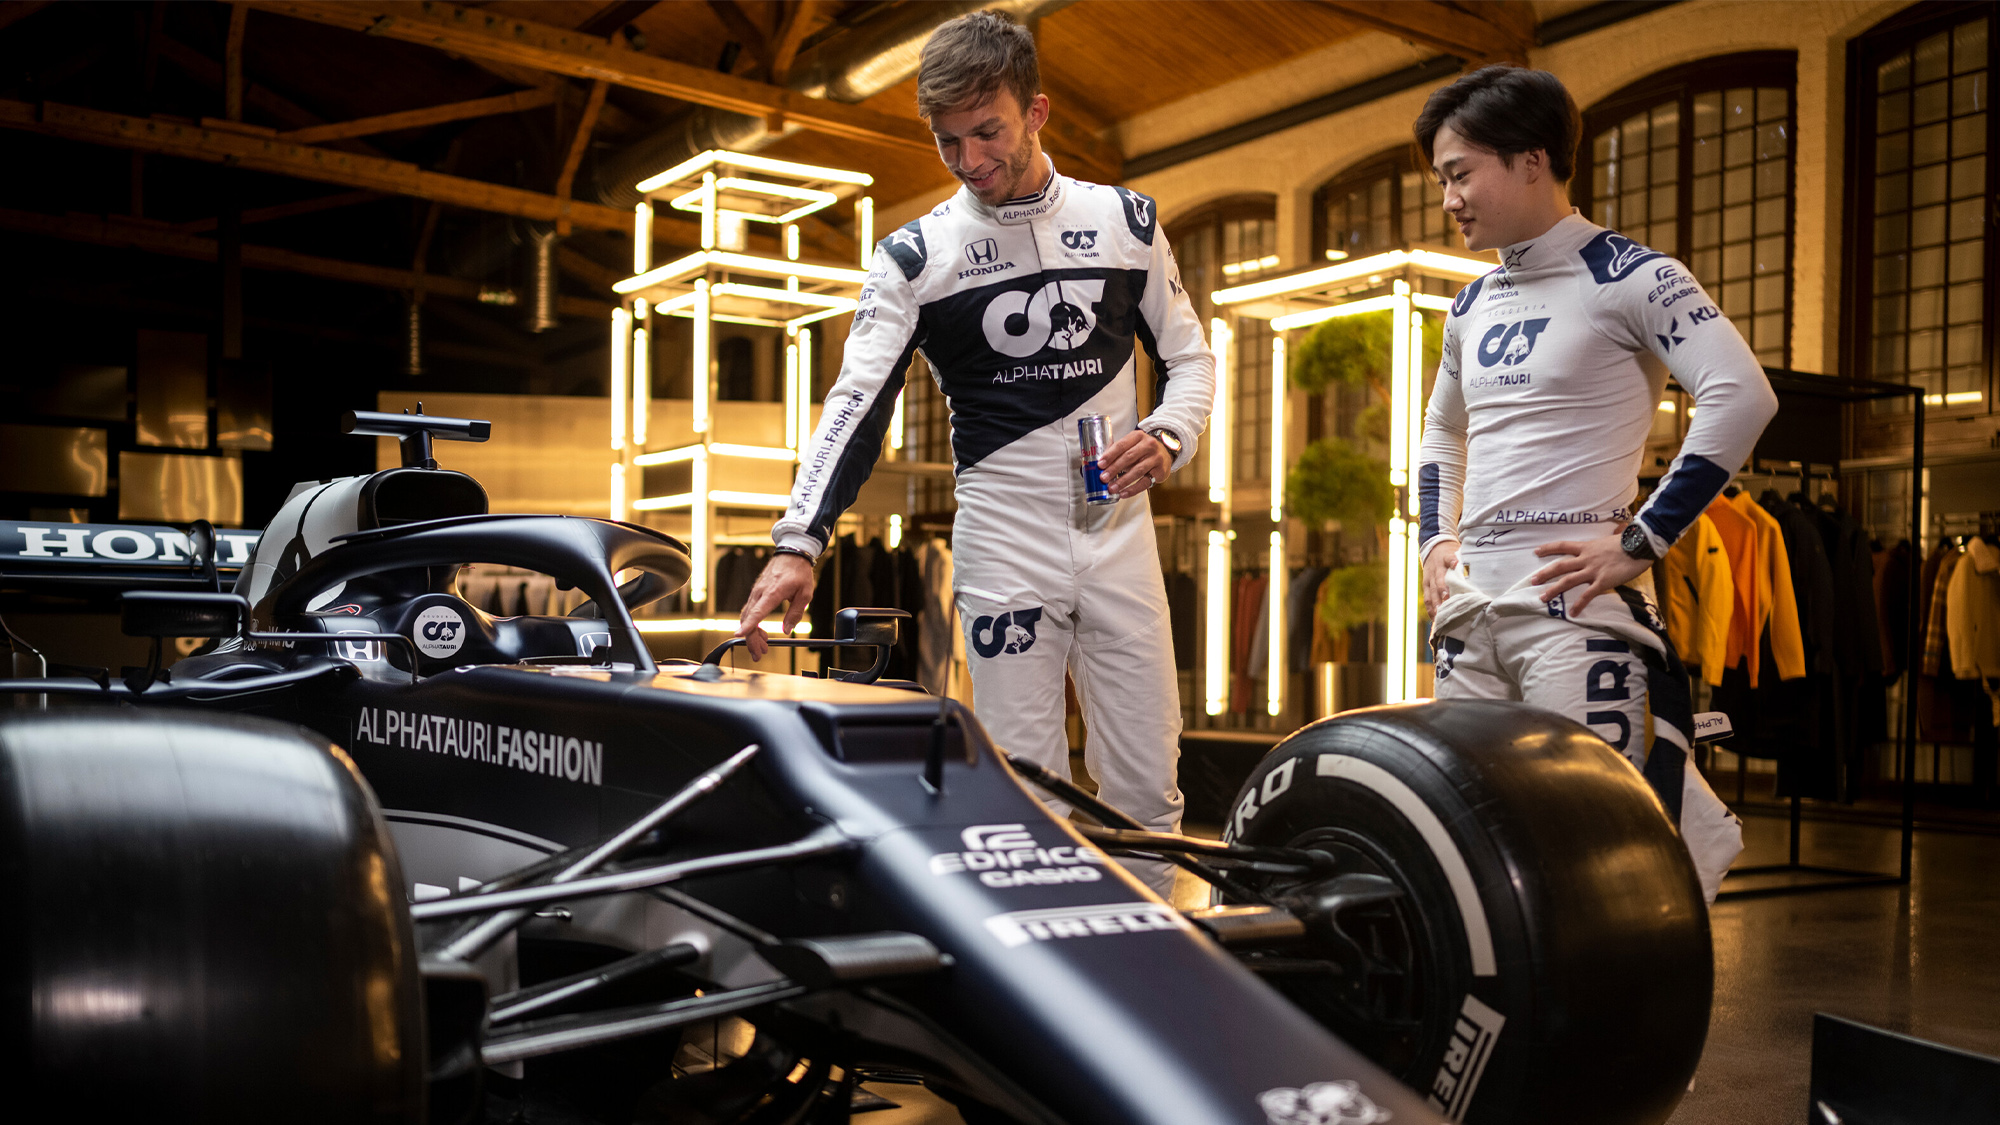 Pierre Gasly and Yuki Tsunoda at the launch of the 2021 AlphaTauri livery